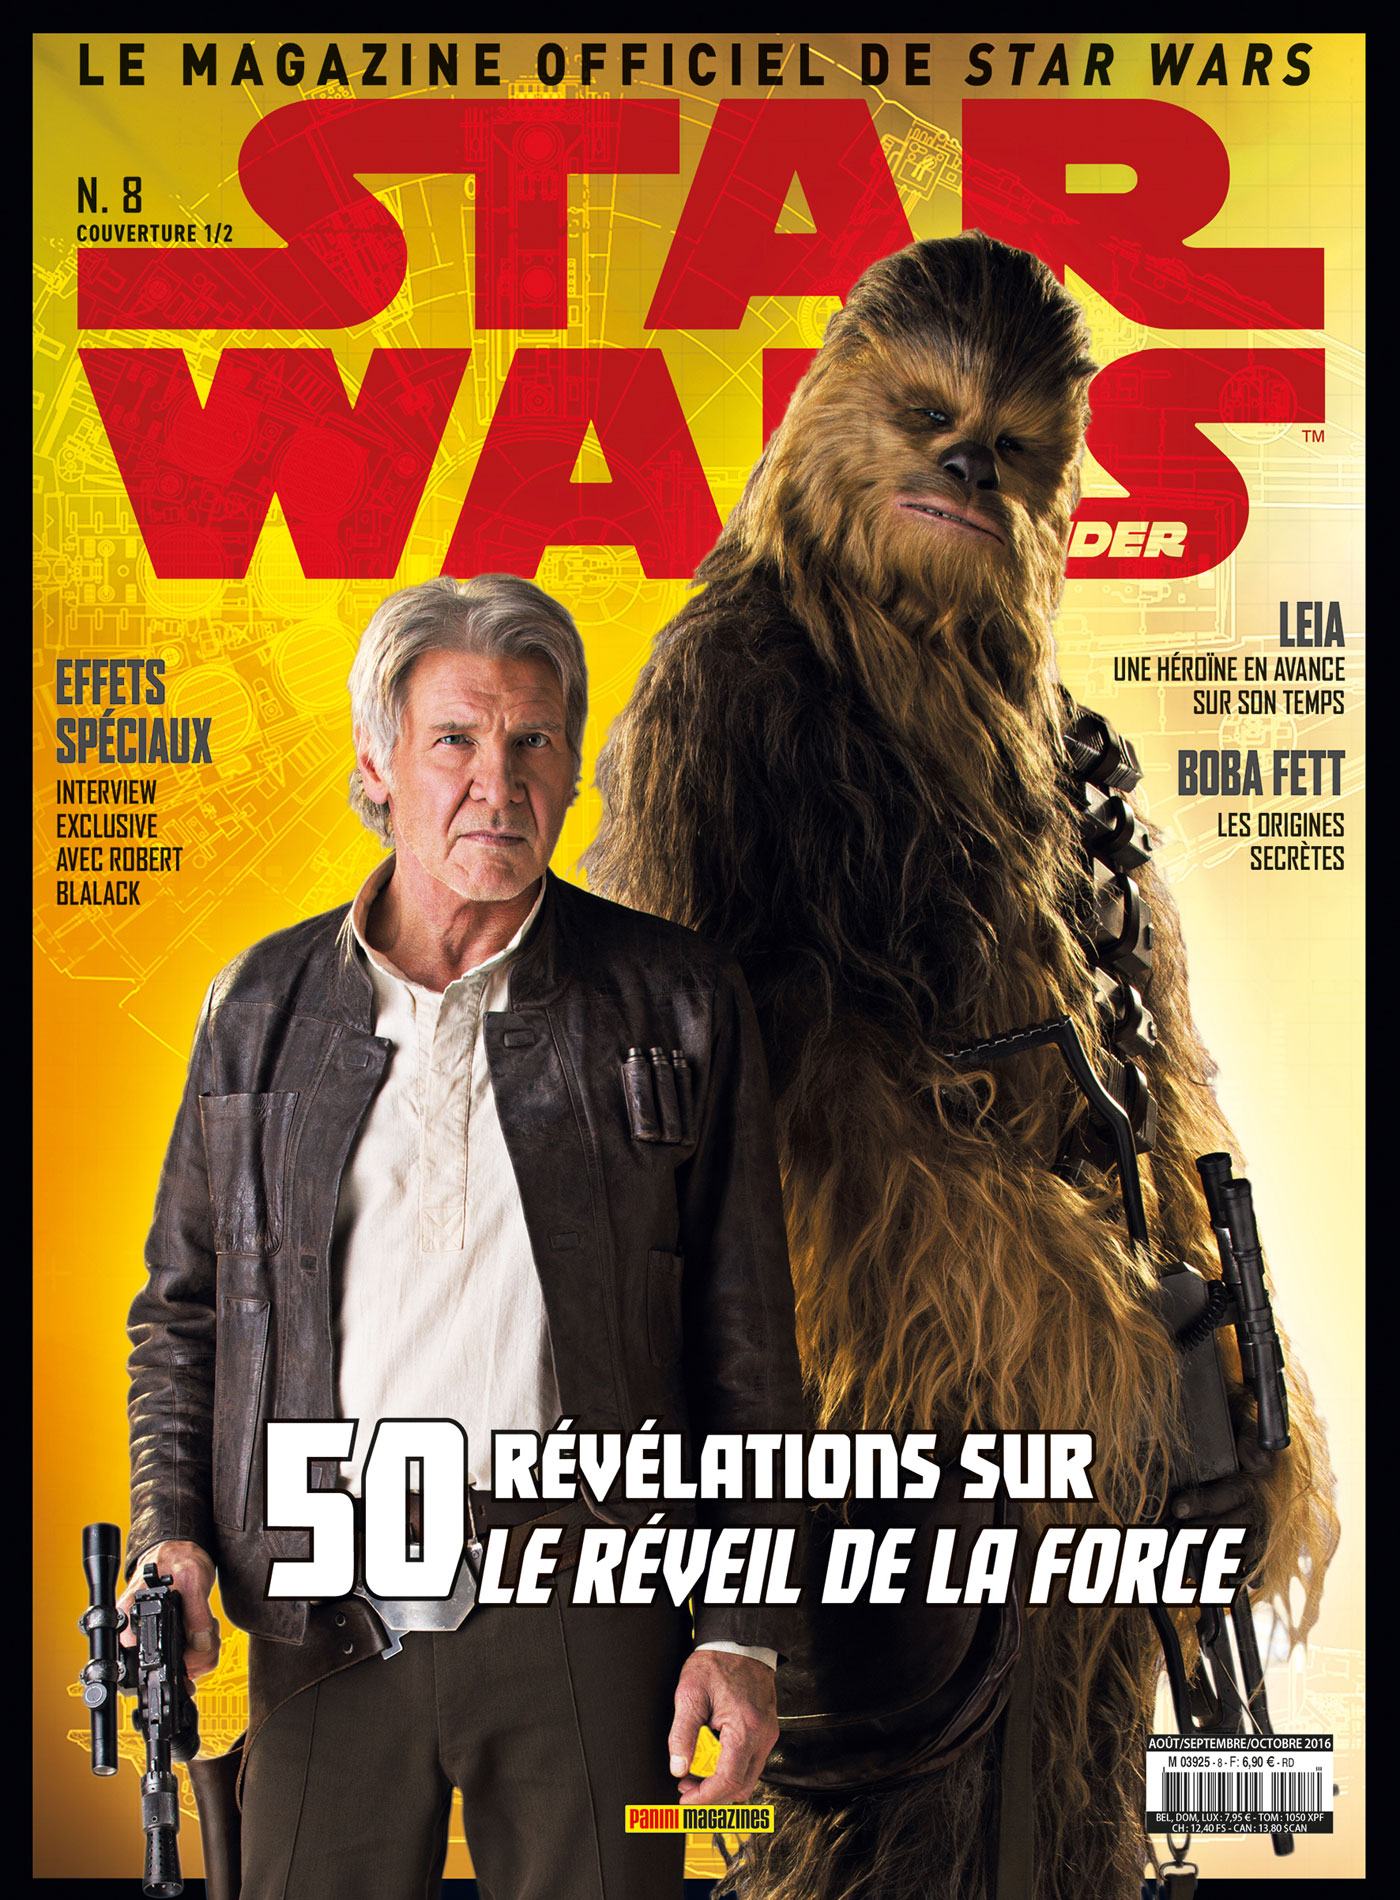 Star Wars Insider 8 - Couverture A